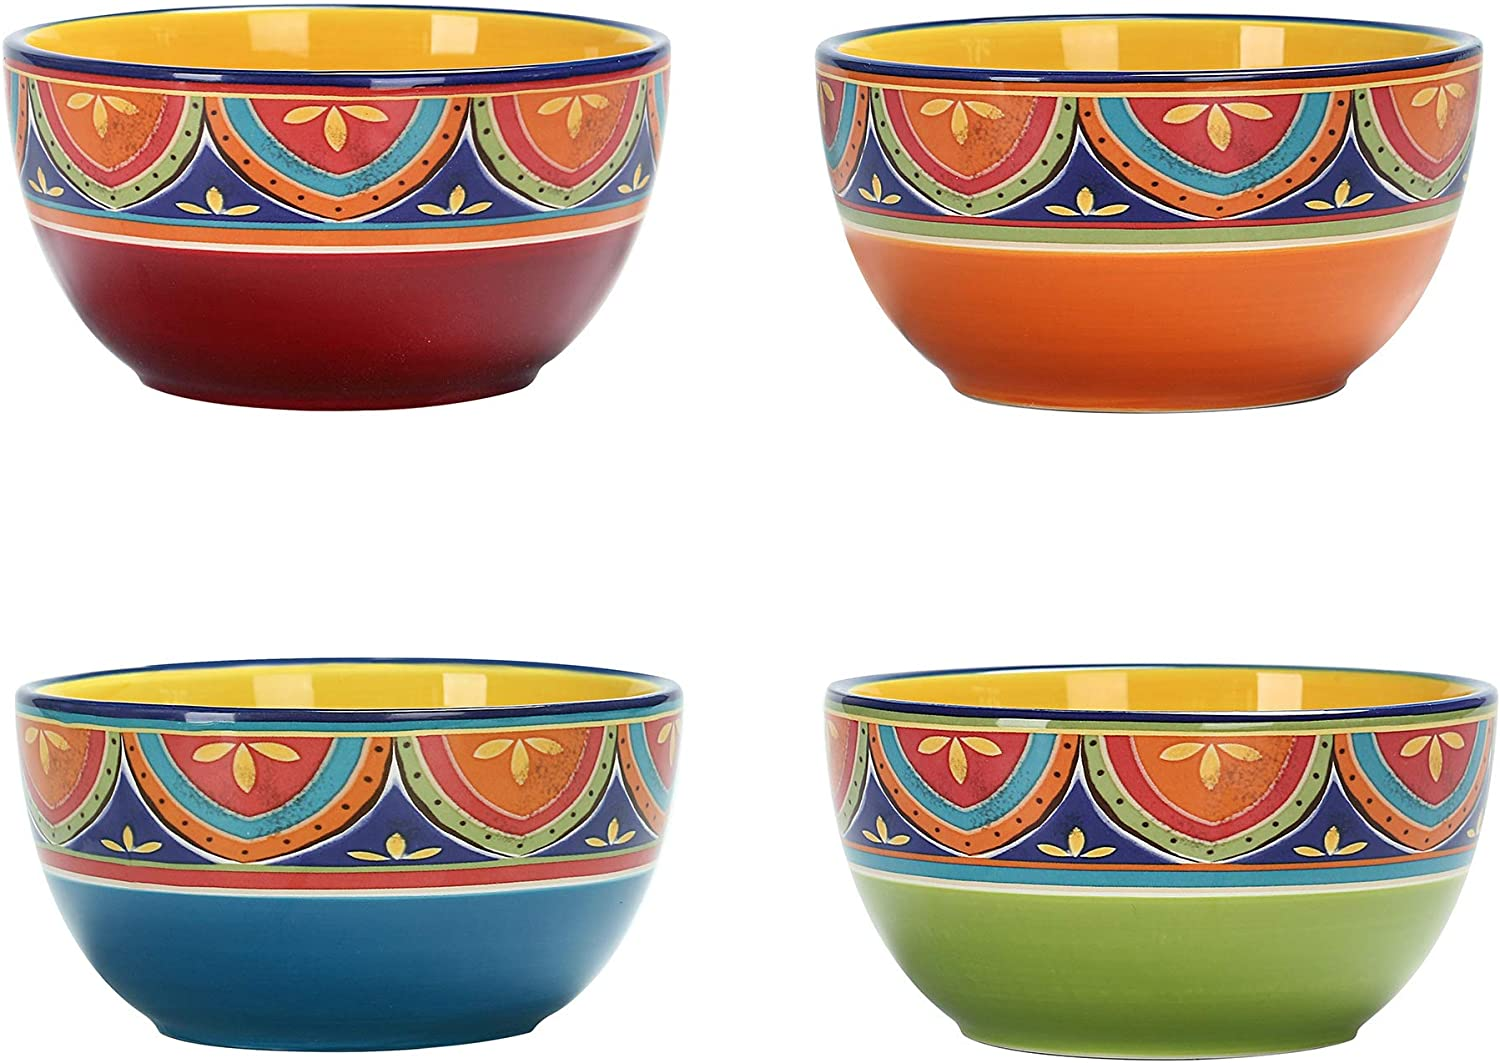 Soup /& Microwave /& Dishwasher Safe House Warming Birthday Anniversary Gift for Pasta Salad Cereal Bico Blue Talavera 26oz Ceramic Cereal Bowls Set of 4